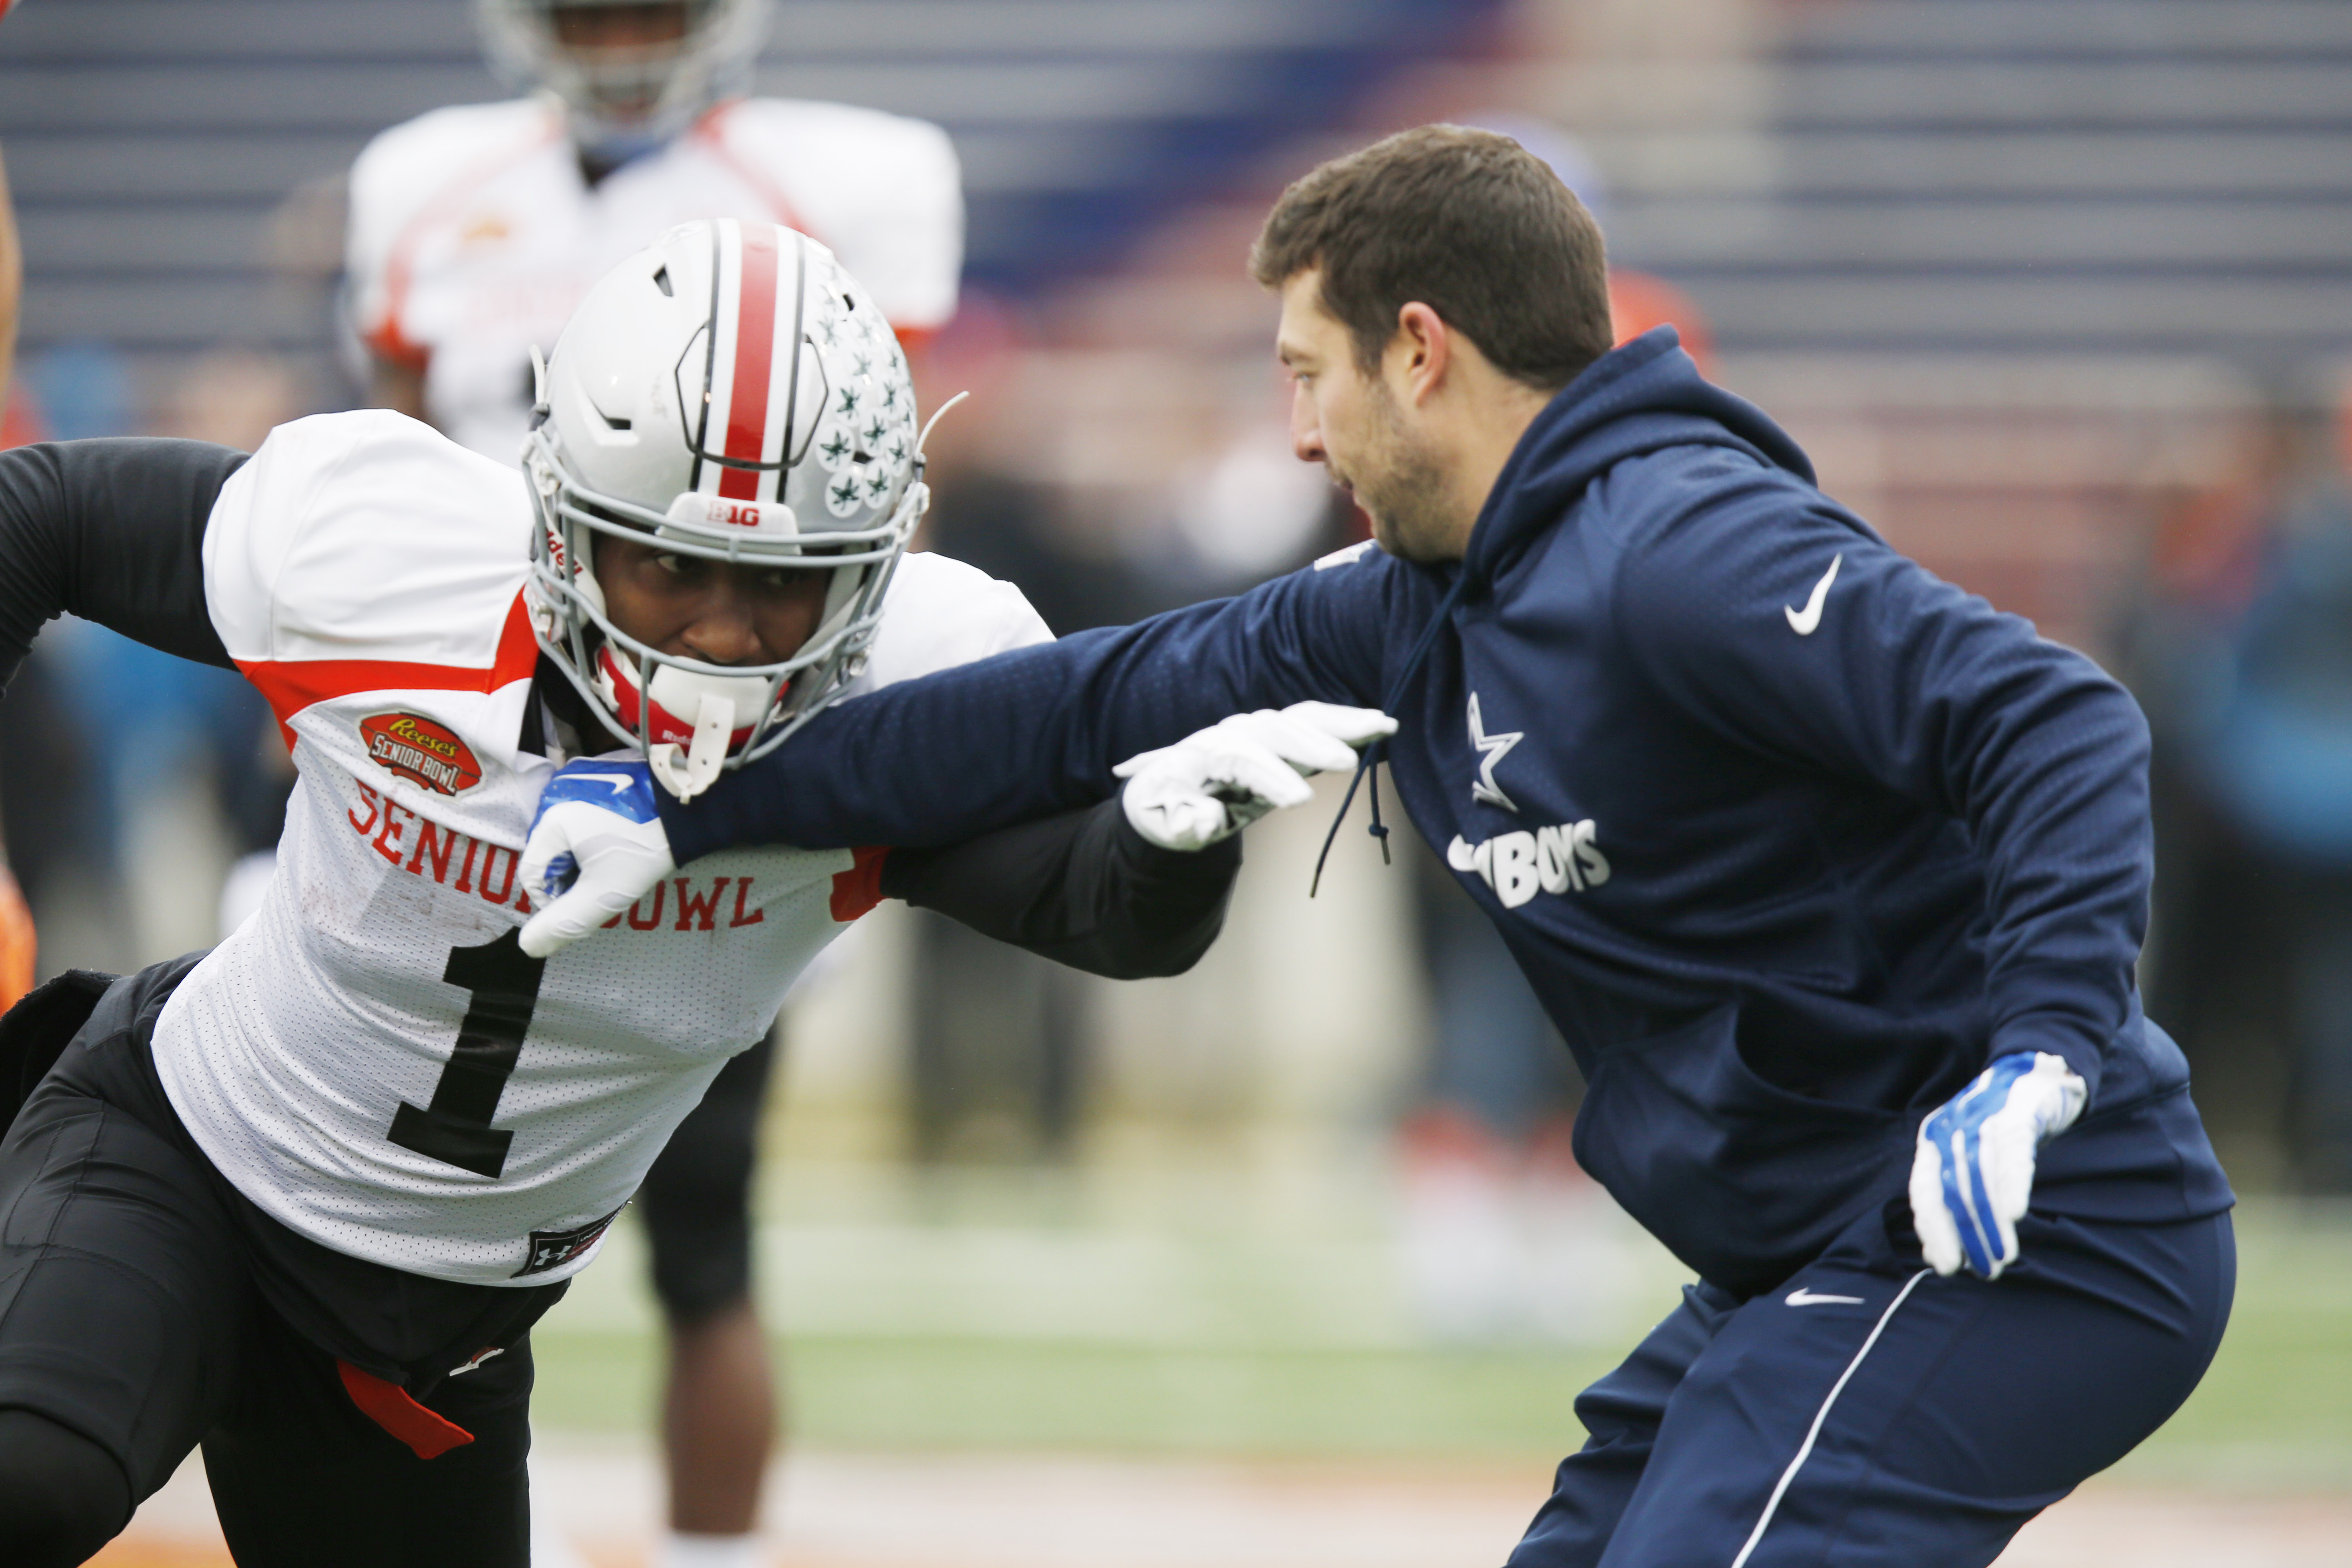 Ohio State wide receiver Braxton Miller (1) runs through drills during NCAA college football practice for the Senior Bowl, Wednesday, Jan. 27, 2016, at LaddPeebles Stadium, in Mobil, Ala. (AP Photo/Brynn Anderson)